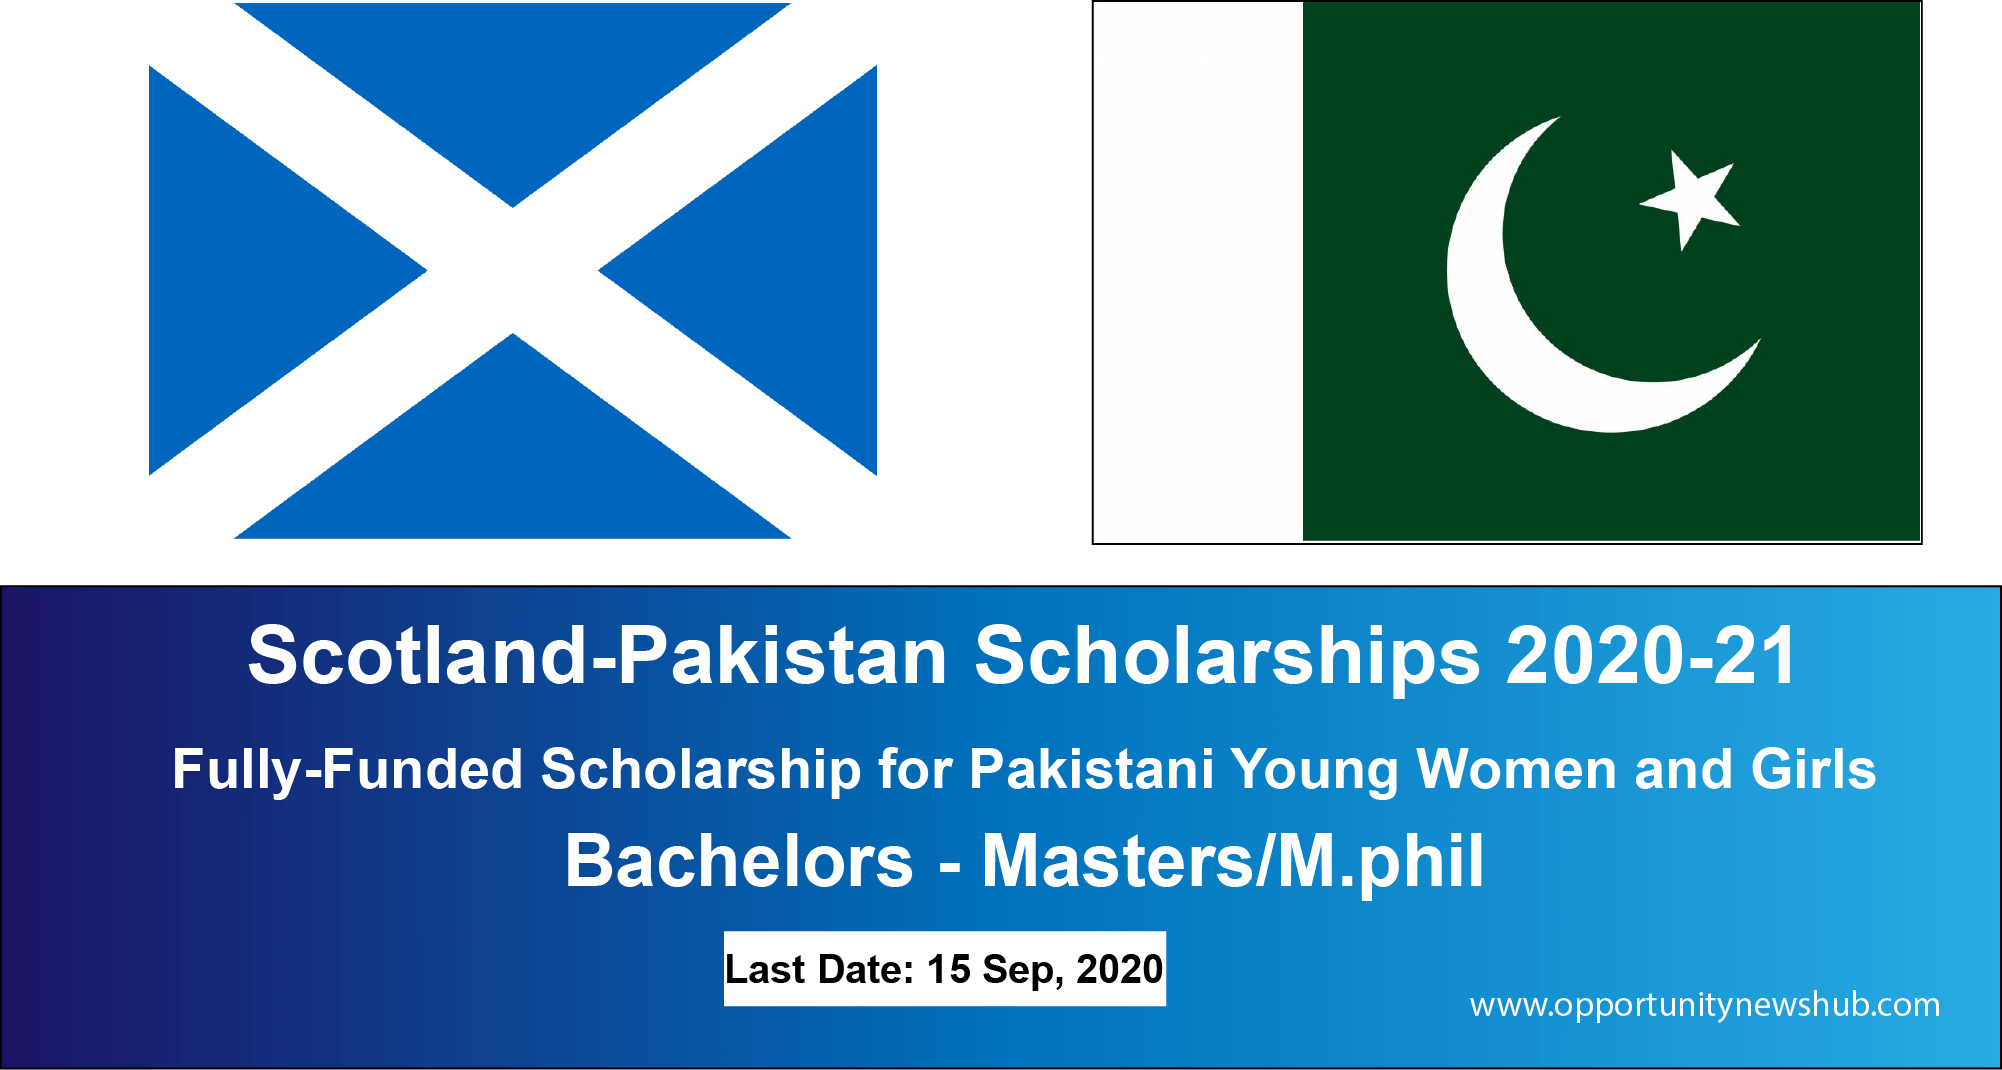 Scotland-Pakistan Scholarships 2020-21 for young women and ...